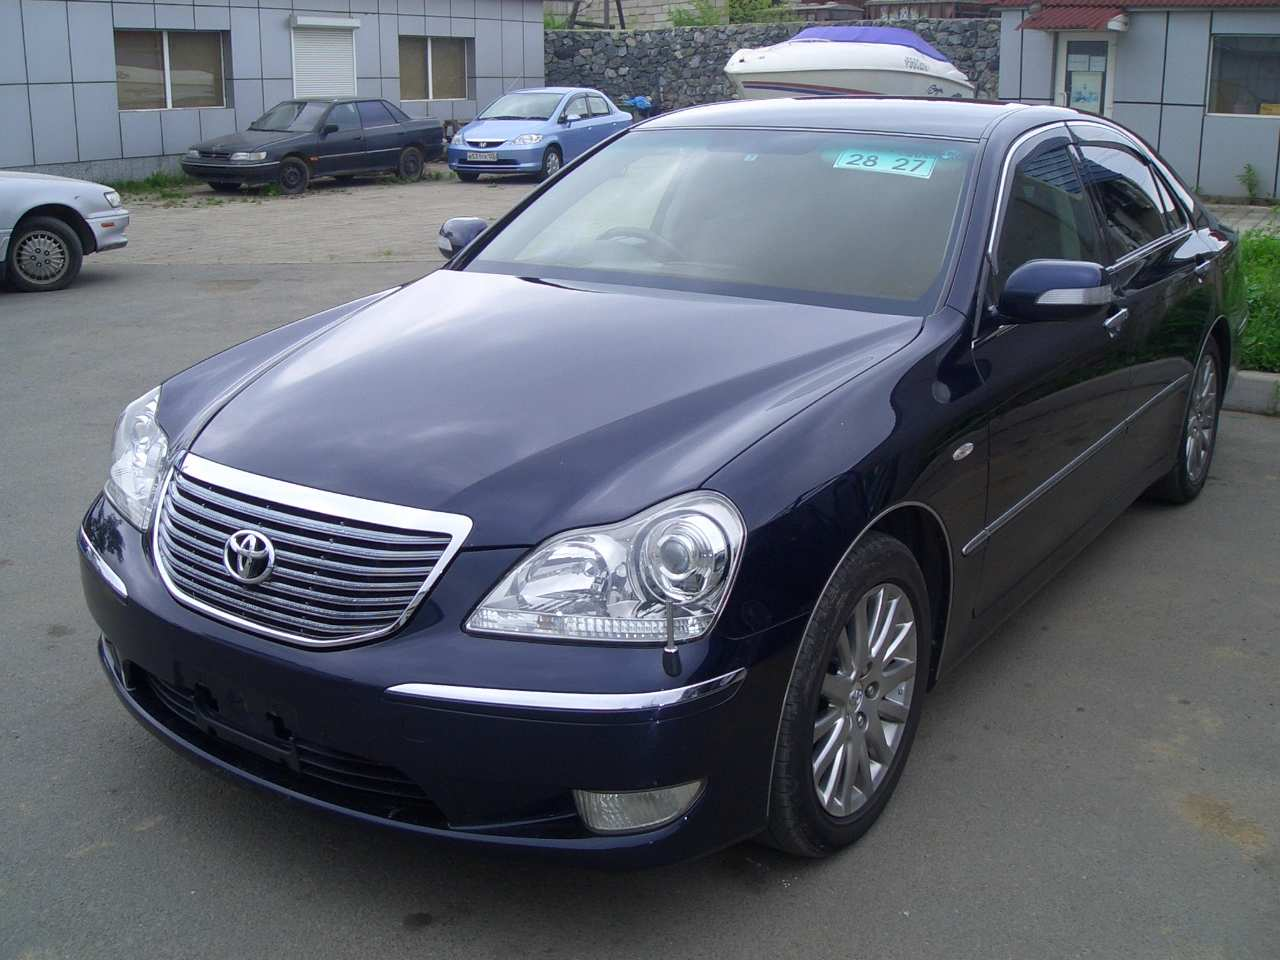 2005 Toyota Crown #14